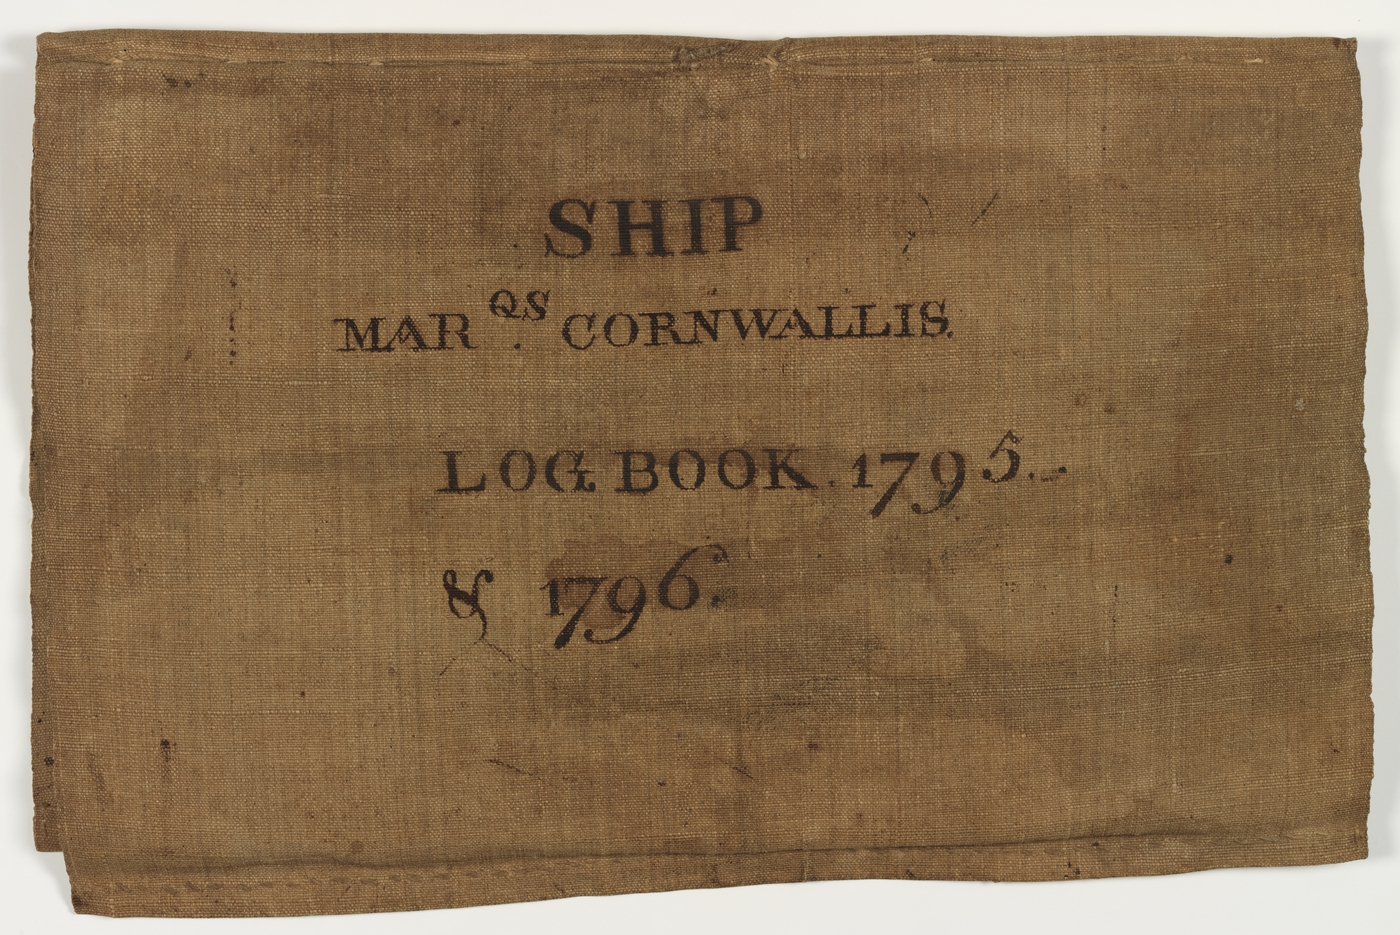 Ship's log that was auctioned recently. Photo credit: NSW Government